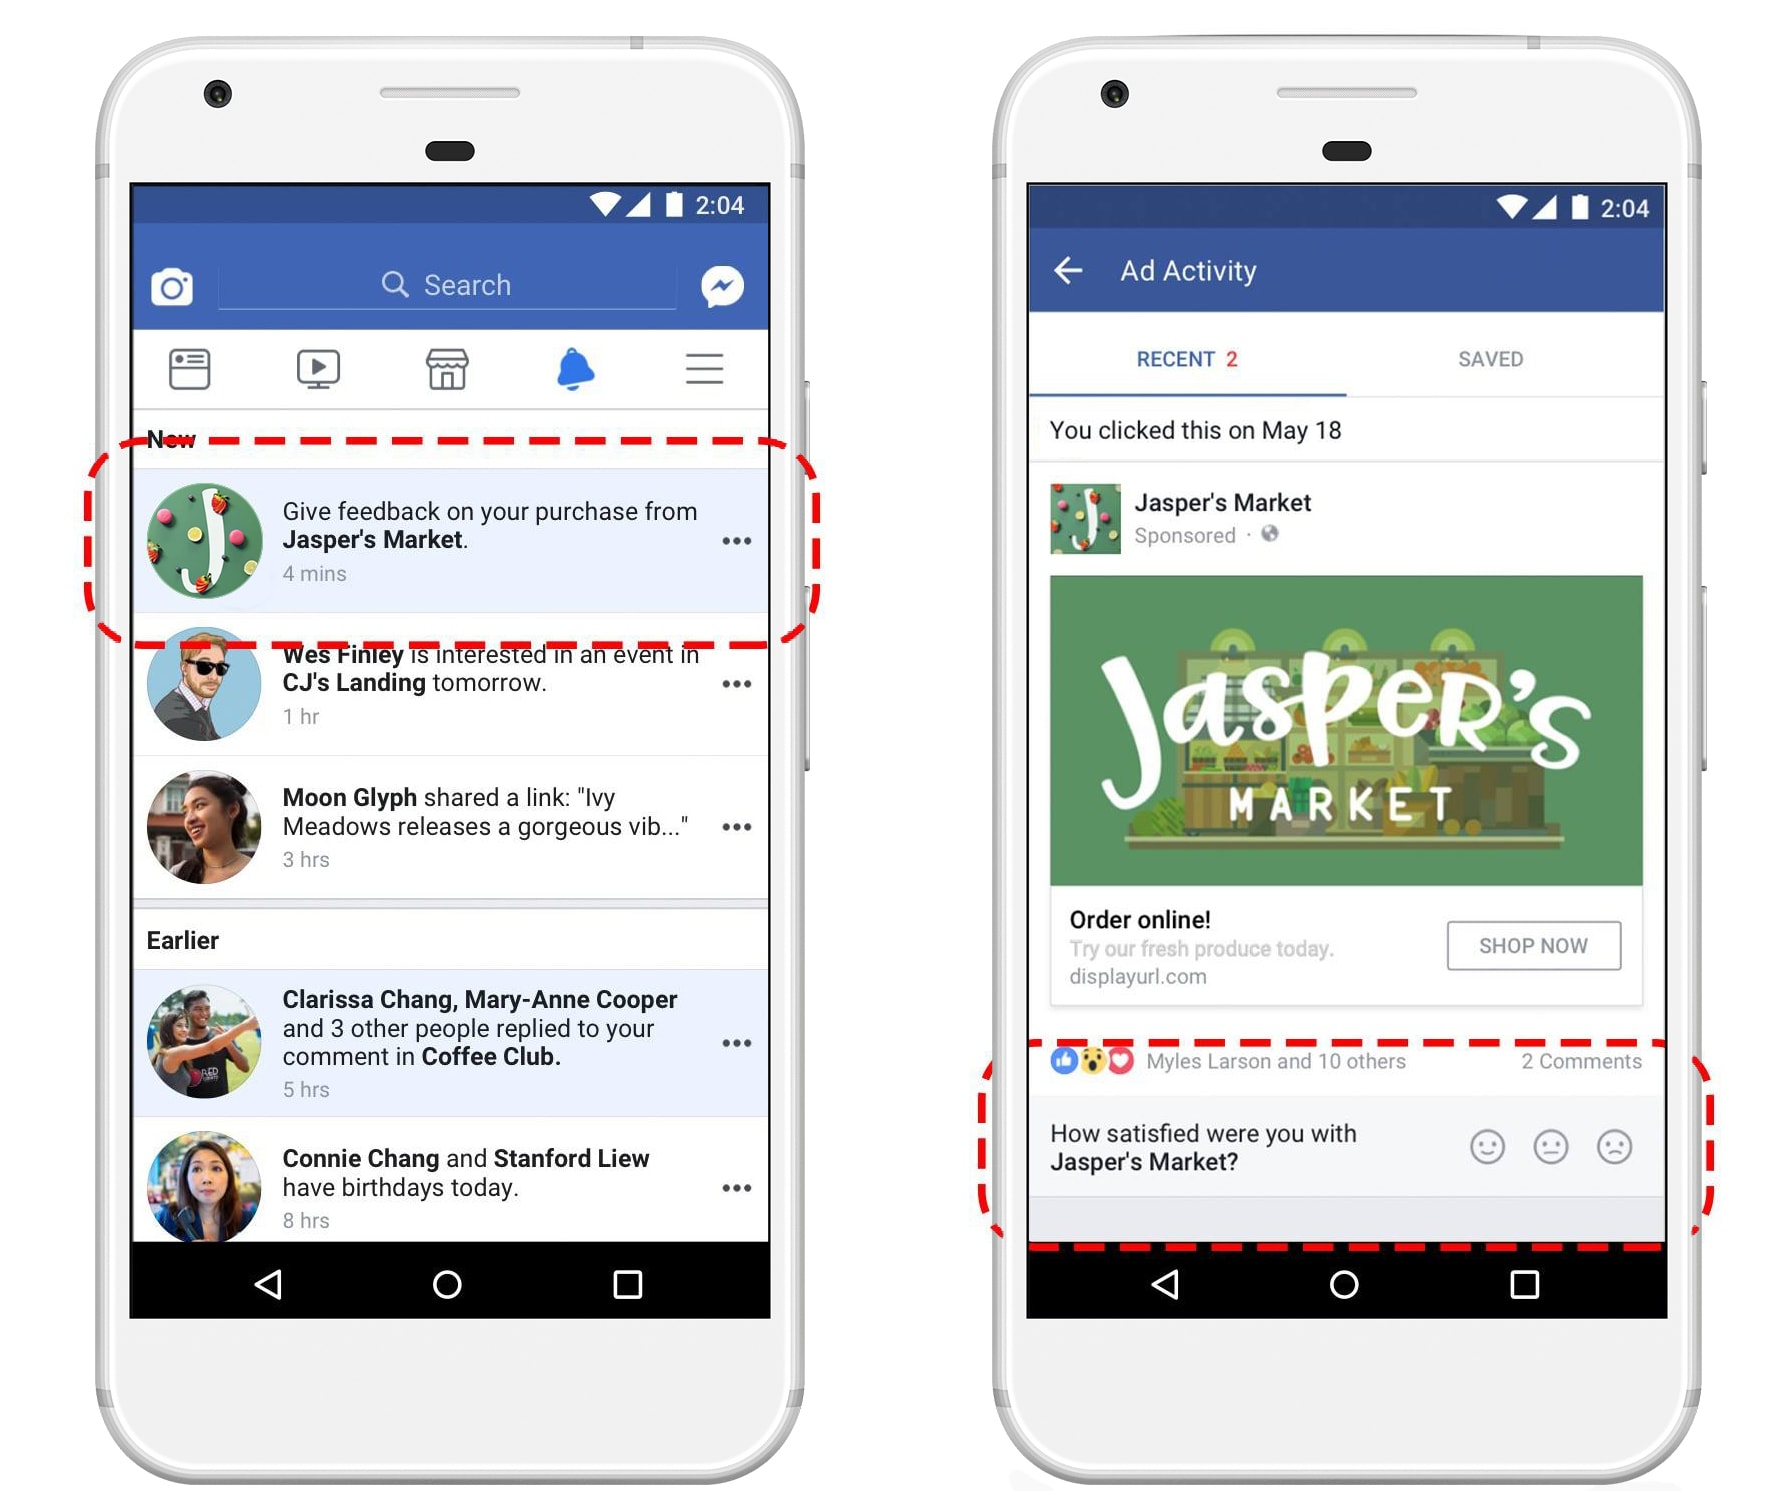 Facebook Will Ban Businesses From Running Ads if They Get Poor Customer Feedback